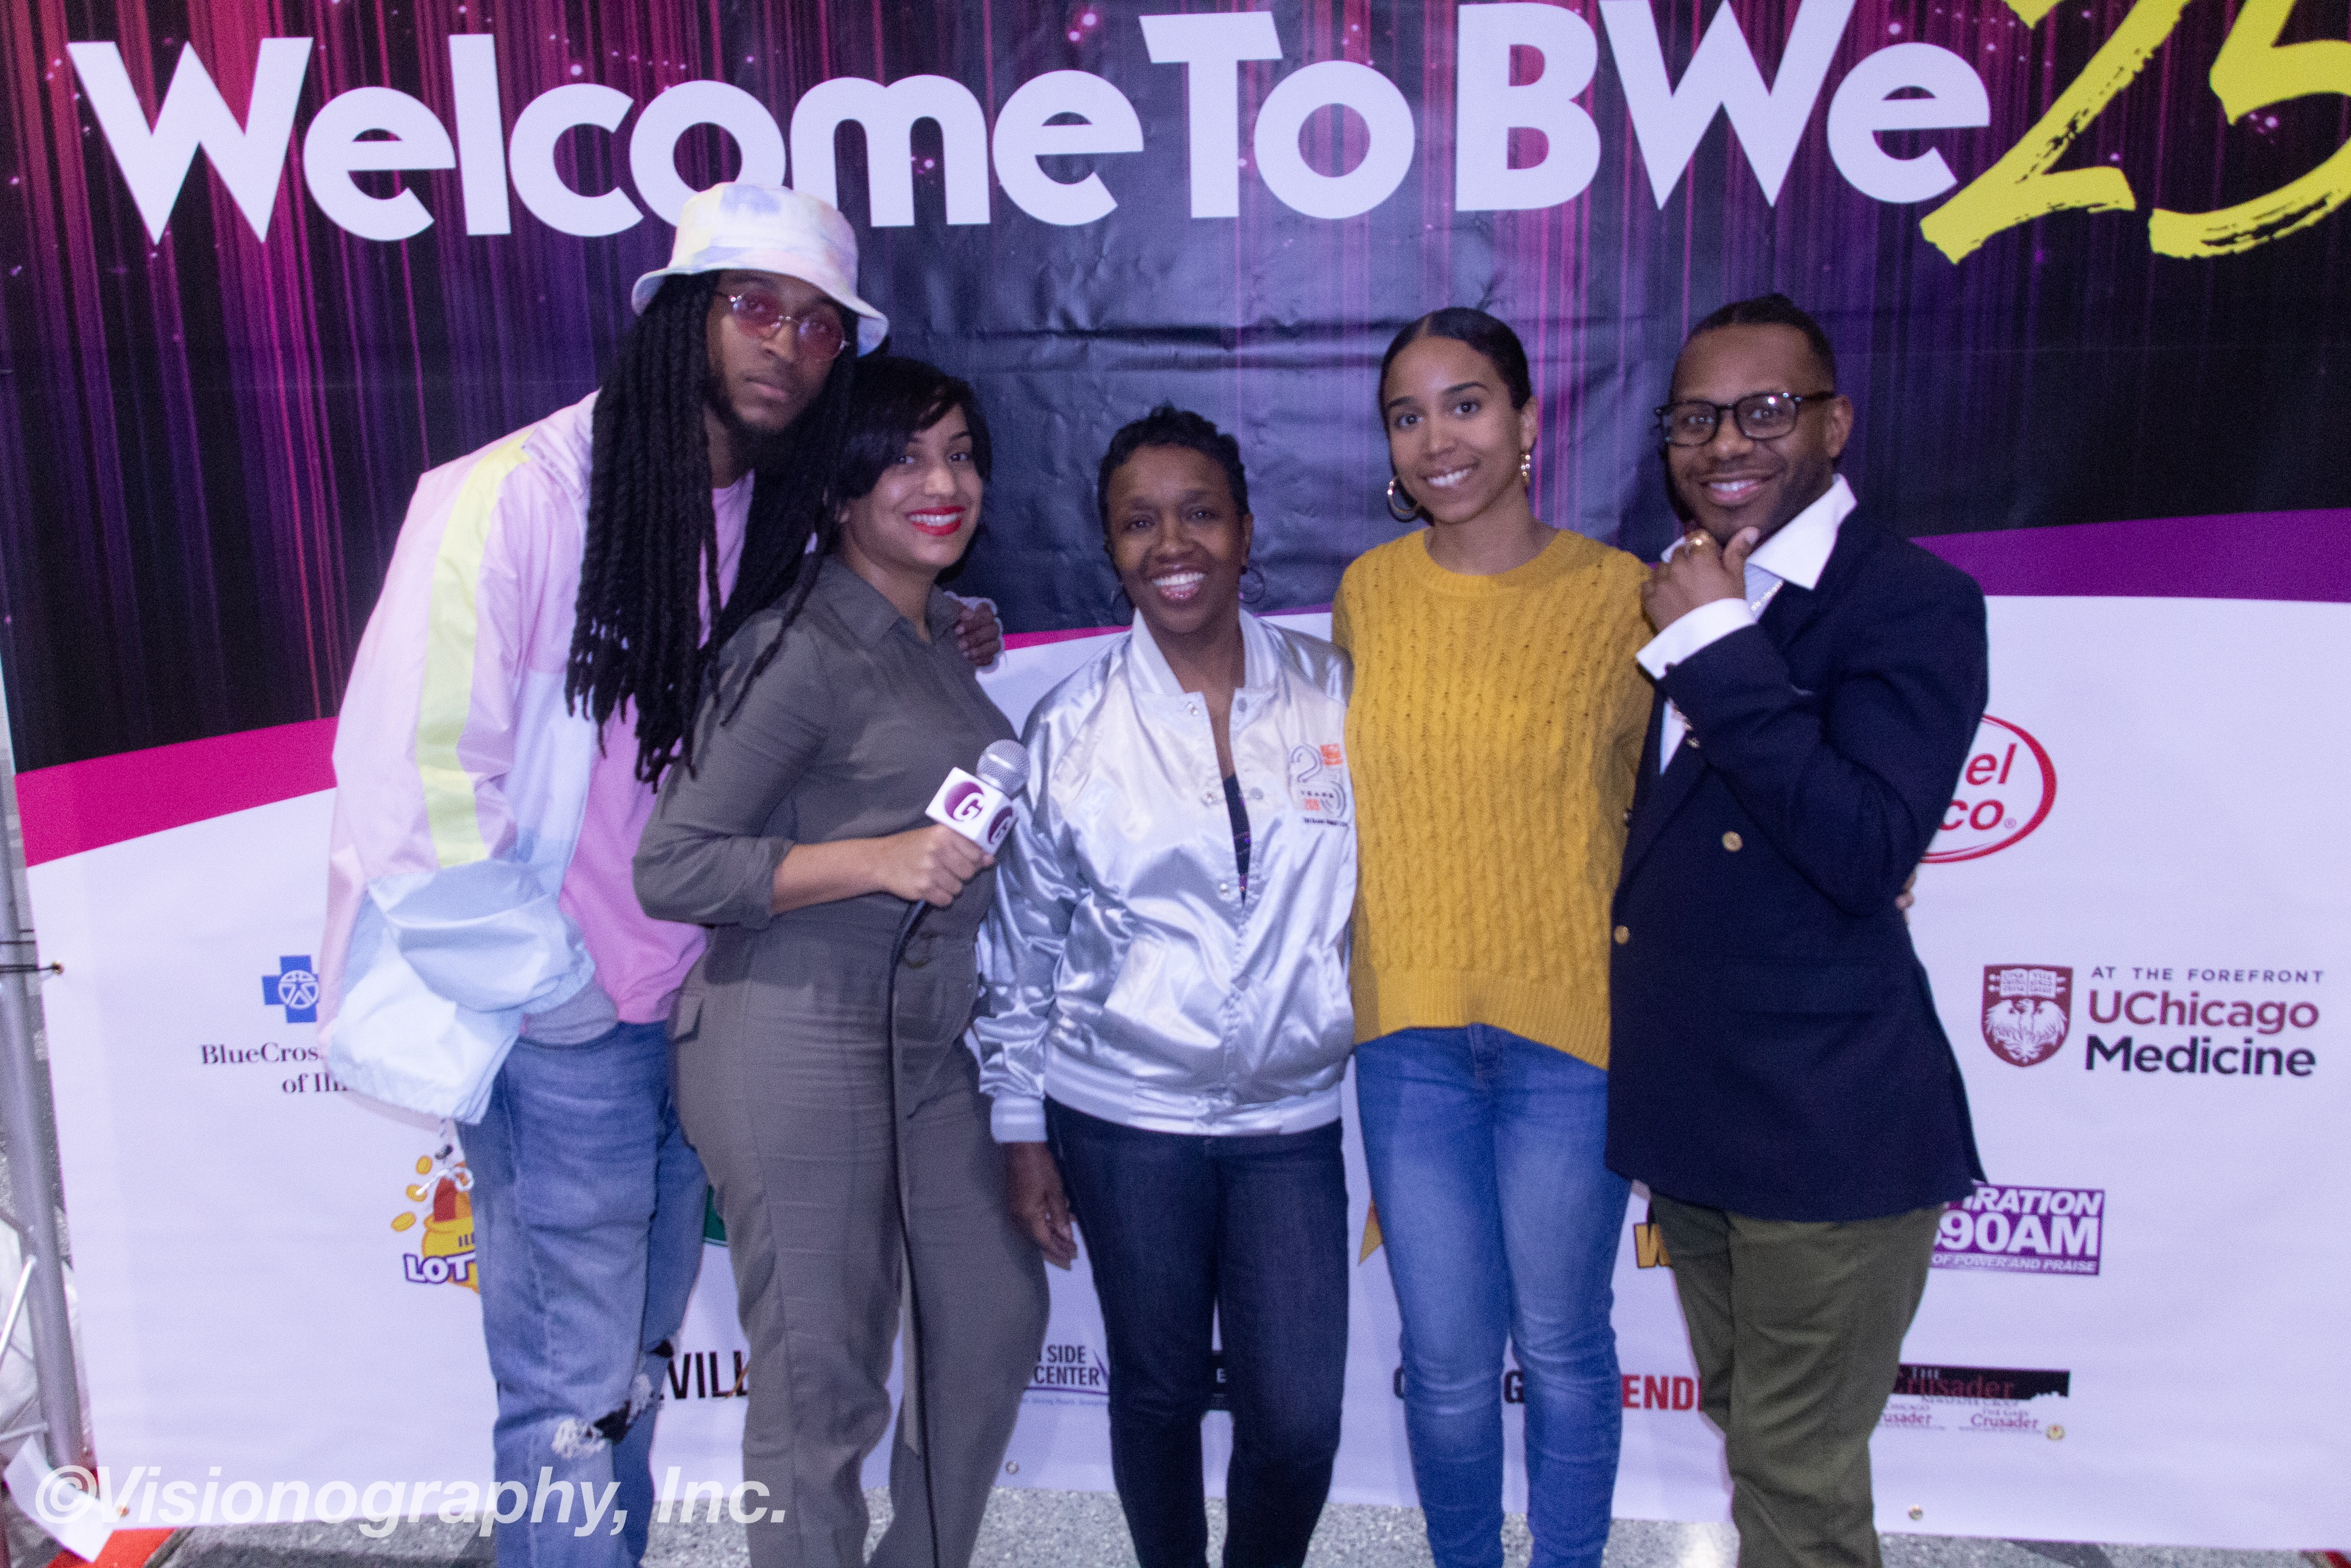 Donnel Perry, Ajshra Harper, Merry Green, Briea Chanel and Minister Israel Azaiah